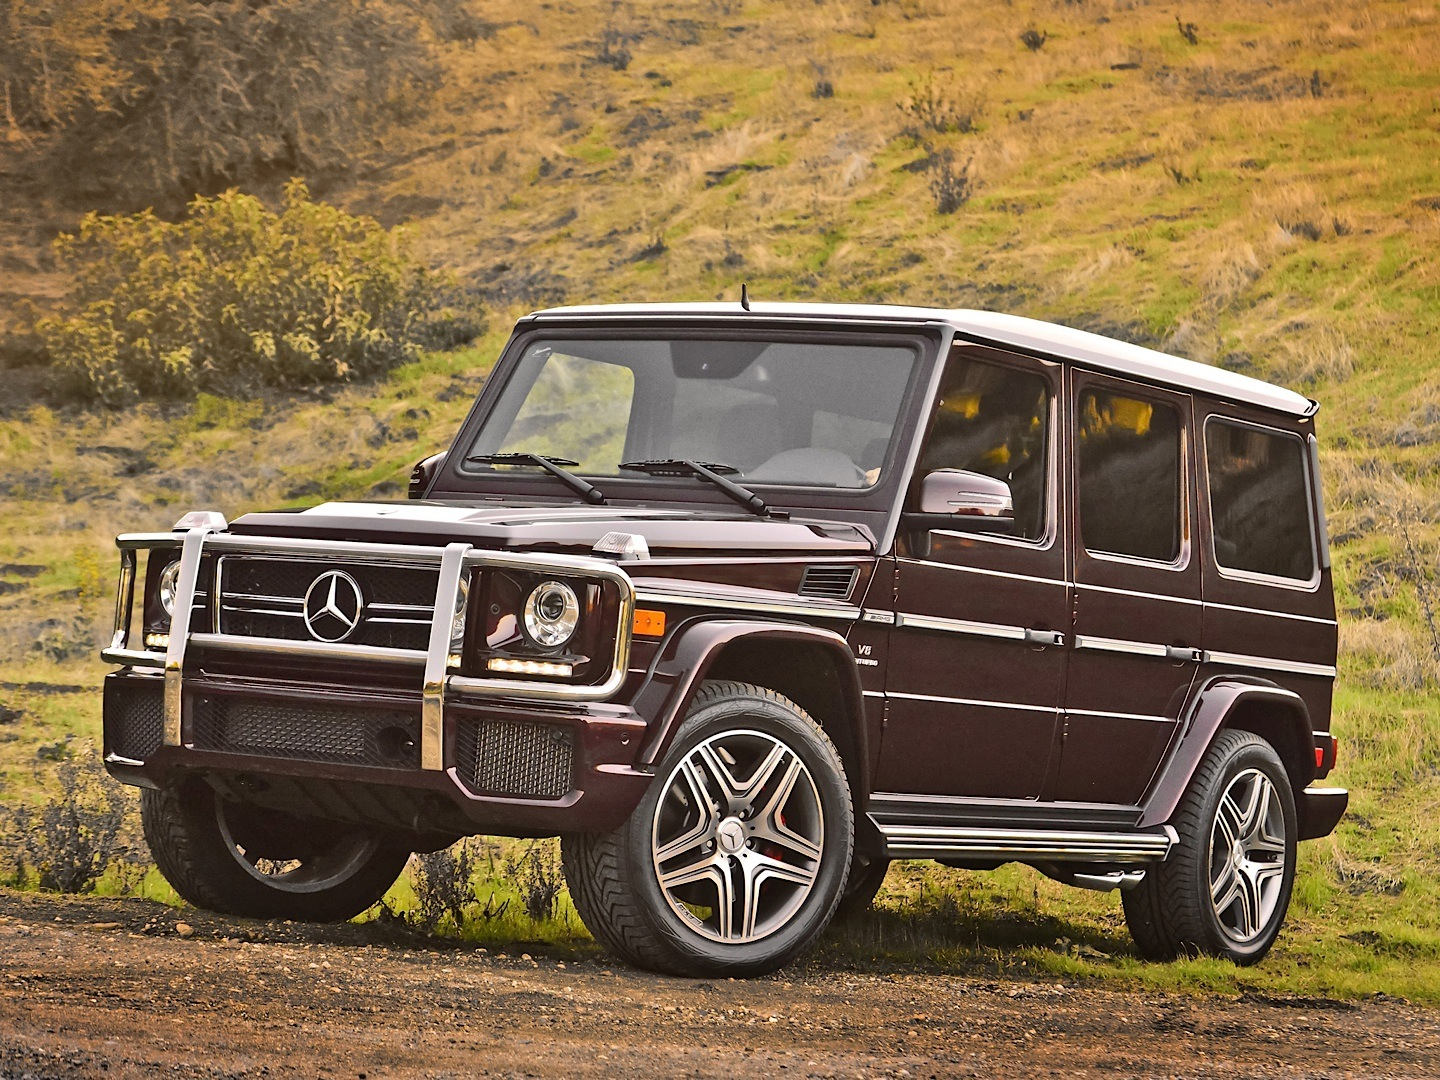 g 63 amg in desert army camouflage is infantry ready autoevolution. Black Bedroom Furniture Sets. Home Design Ideas